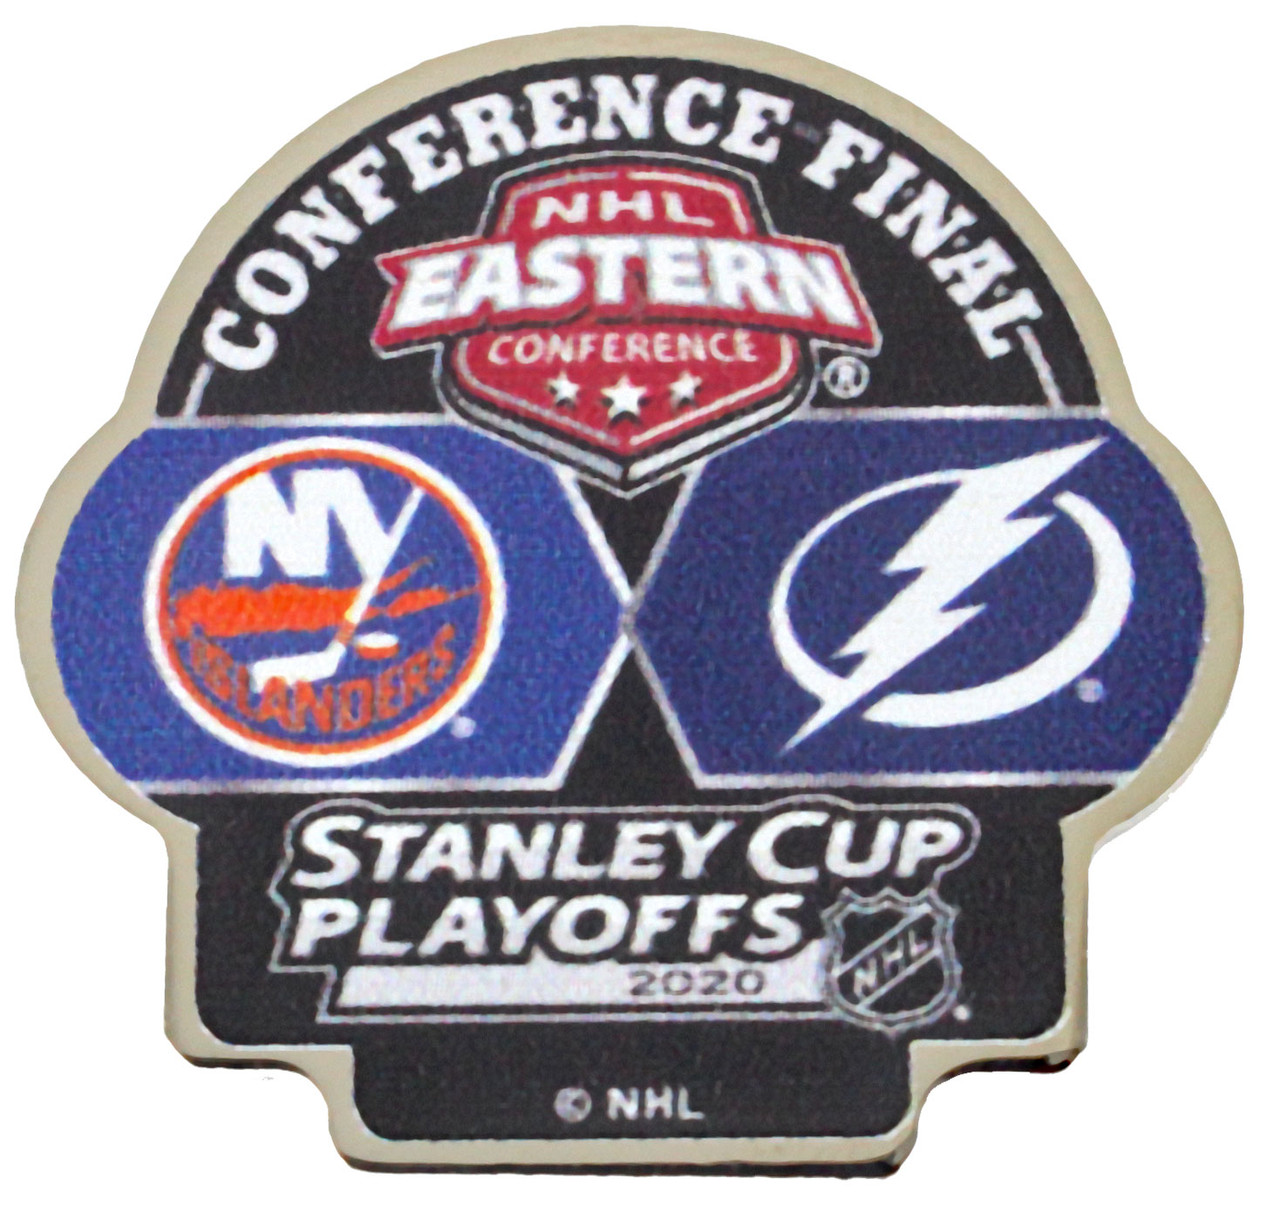 Islanders Eastern Conference Final PIN 2020 Stanley Cup Playoffs